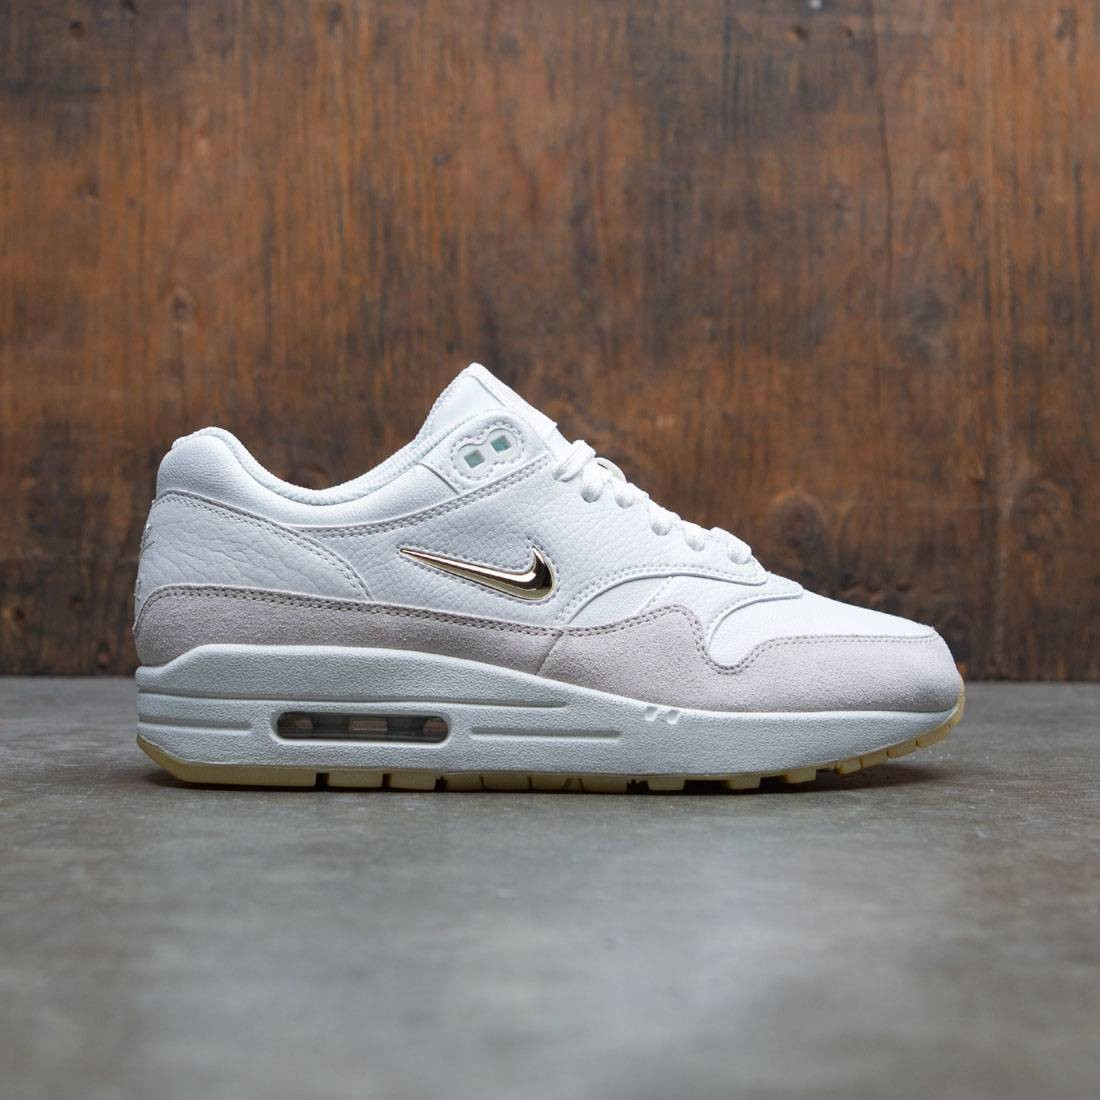 promo code 8cffc b35d7 ... sweden nike women air max 1 premium sc summit white mtlc gold star light  bone 17aea